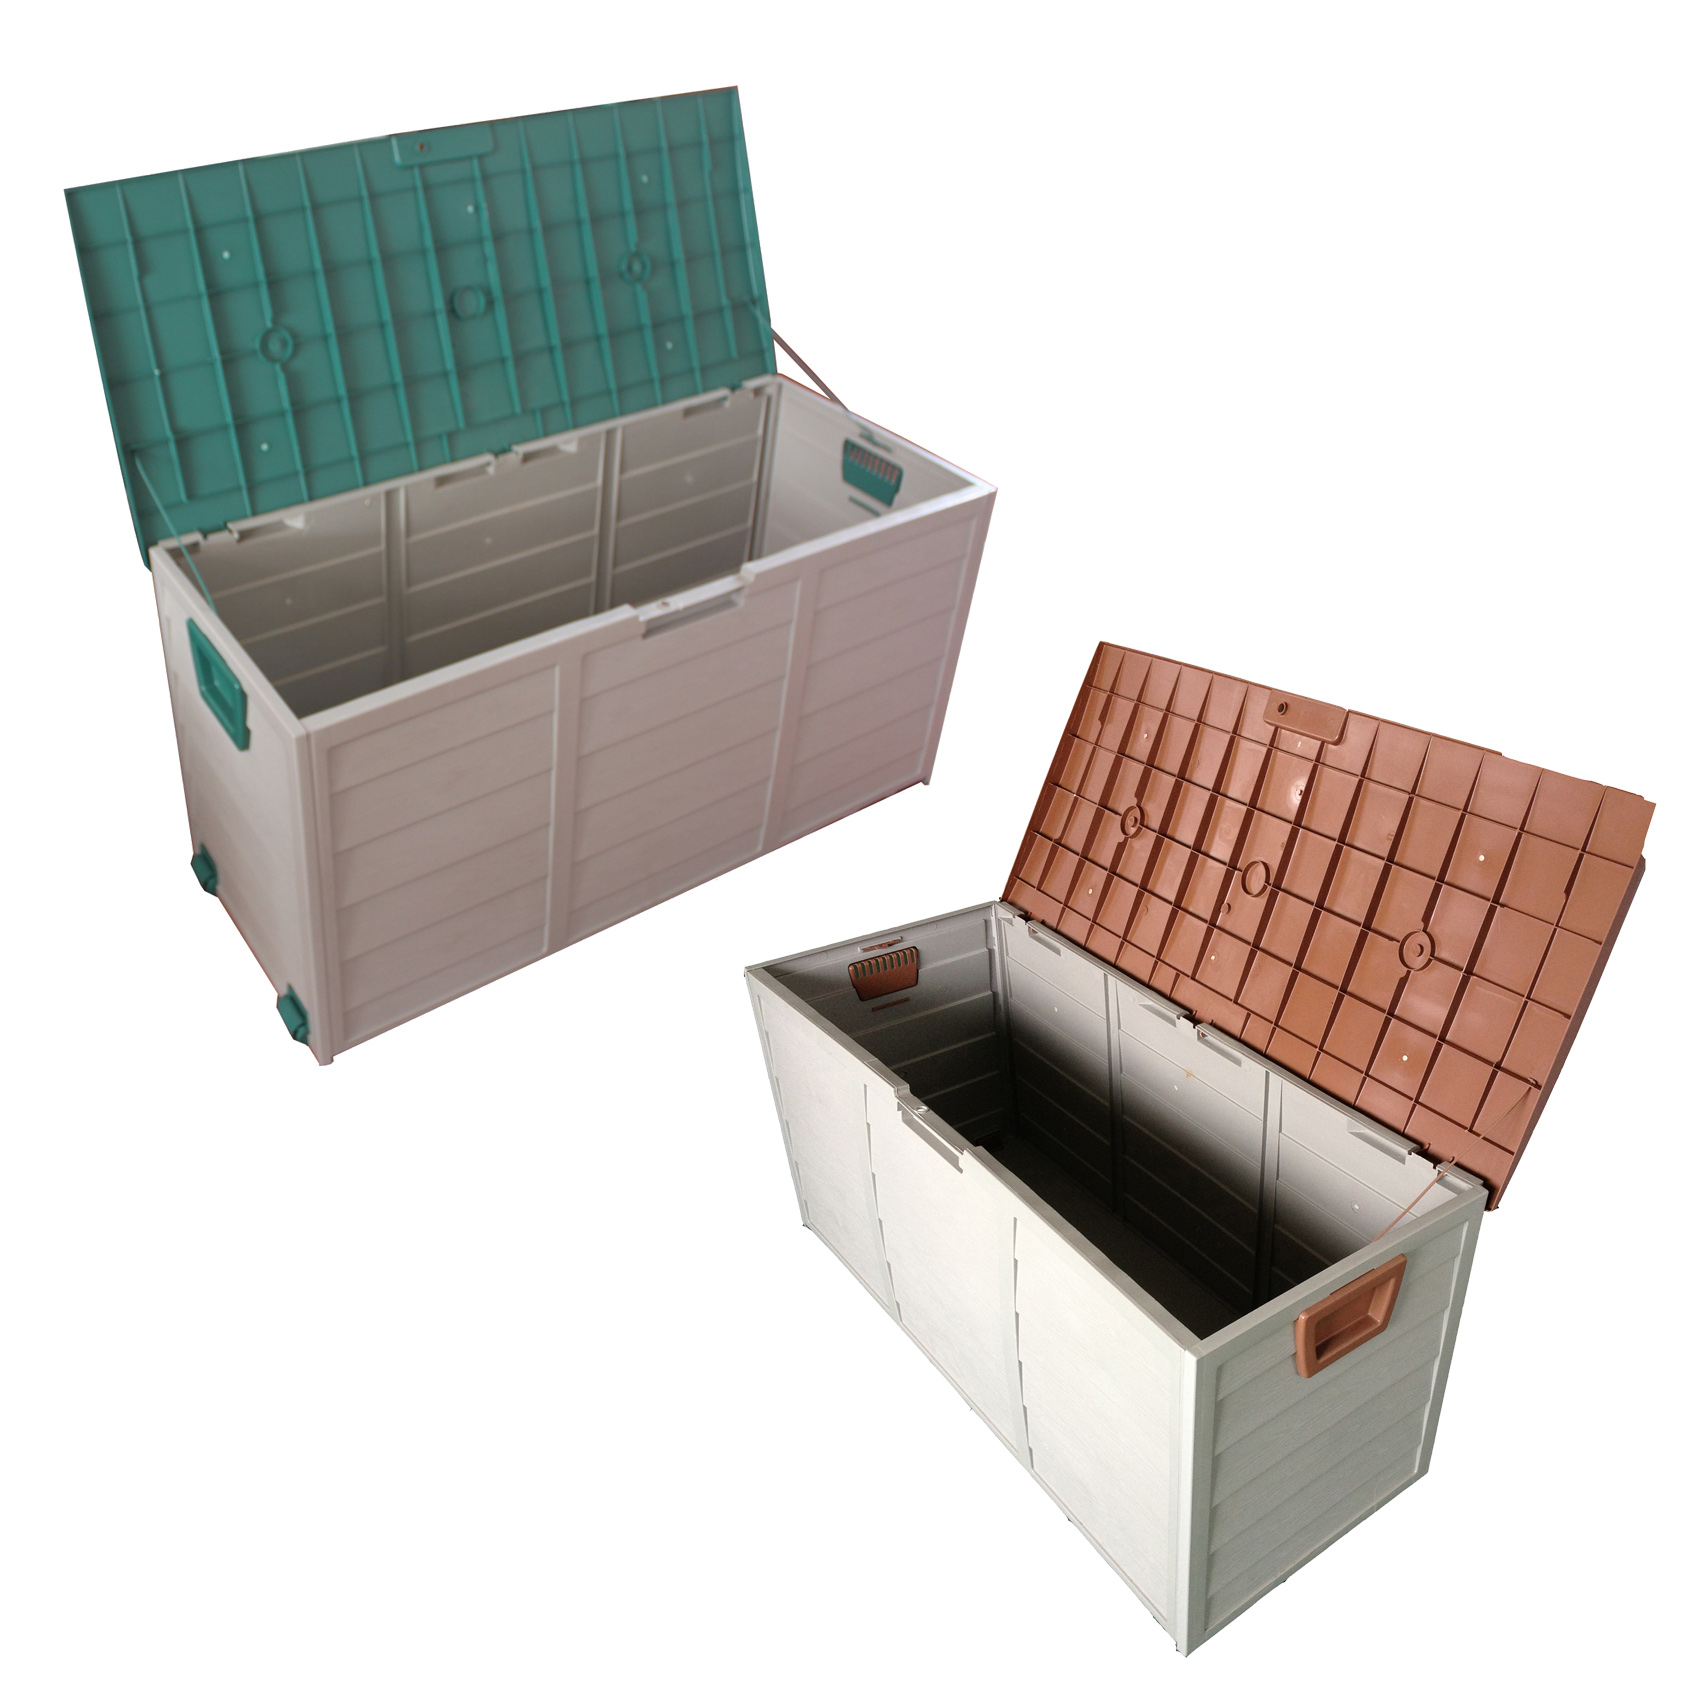 New Garden Outdoor Plastic Utility Storage Chest Shed Box Case Container Wheels